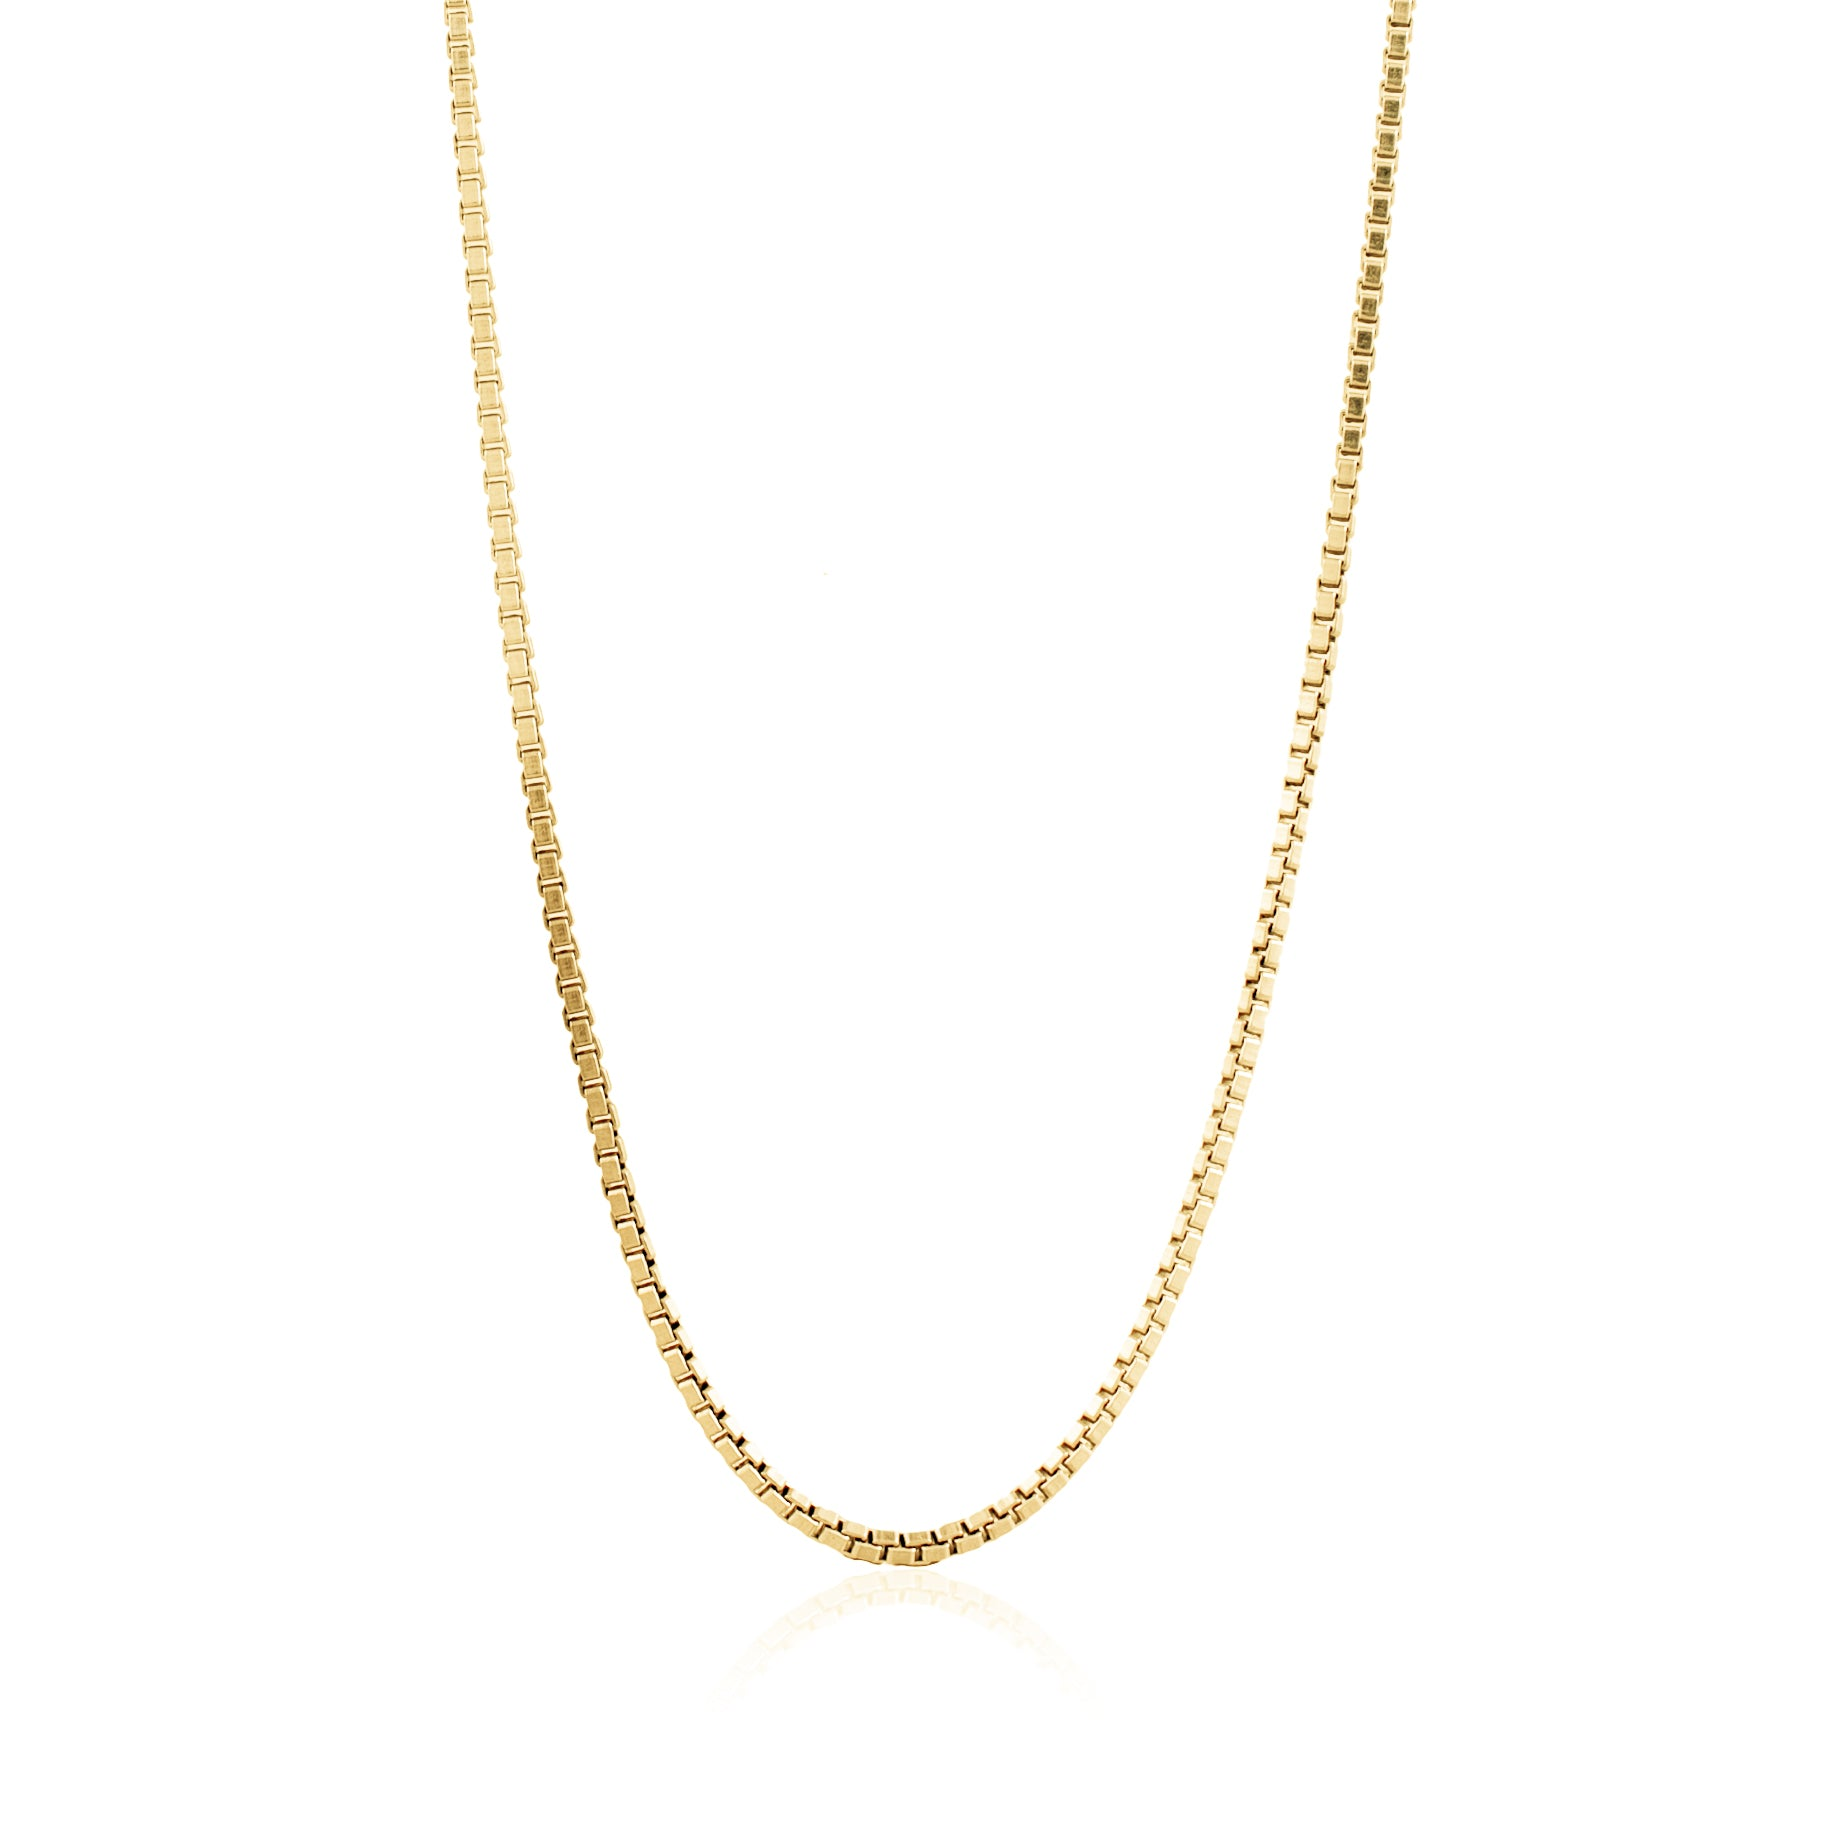 Luna & Rose Bahama Box Chain Necklace - Gold made from recycled Sterling Silver